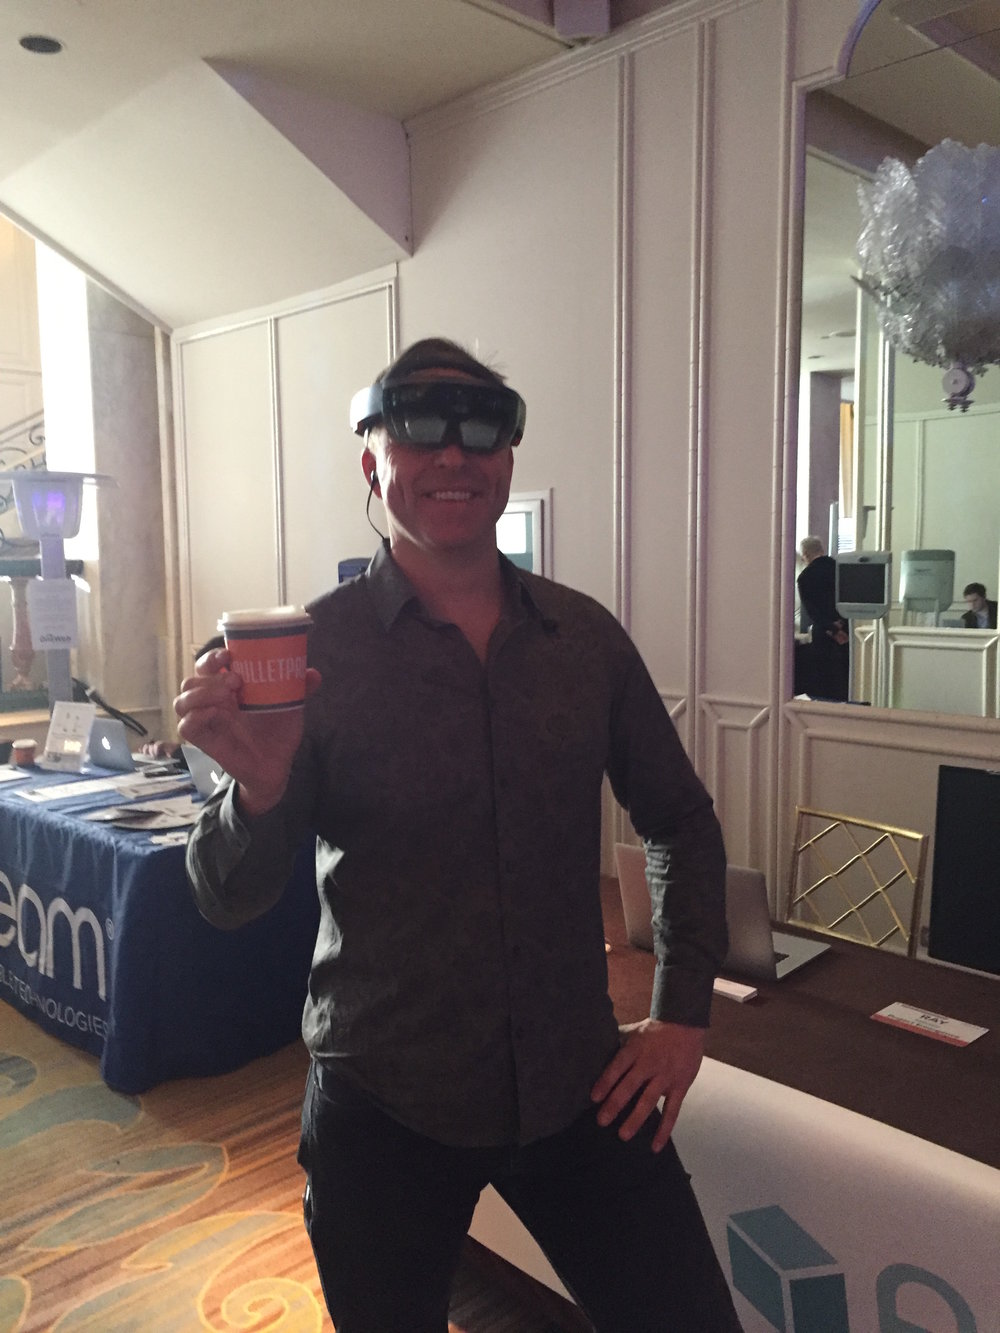 Dave Asprey, CEO of Bulletproof and renowned inventor of Bulletproof Coffee, enjoying our Augmented Reality technologies.